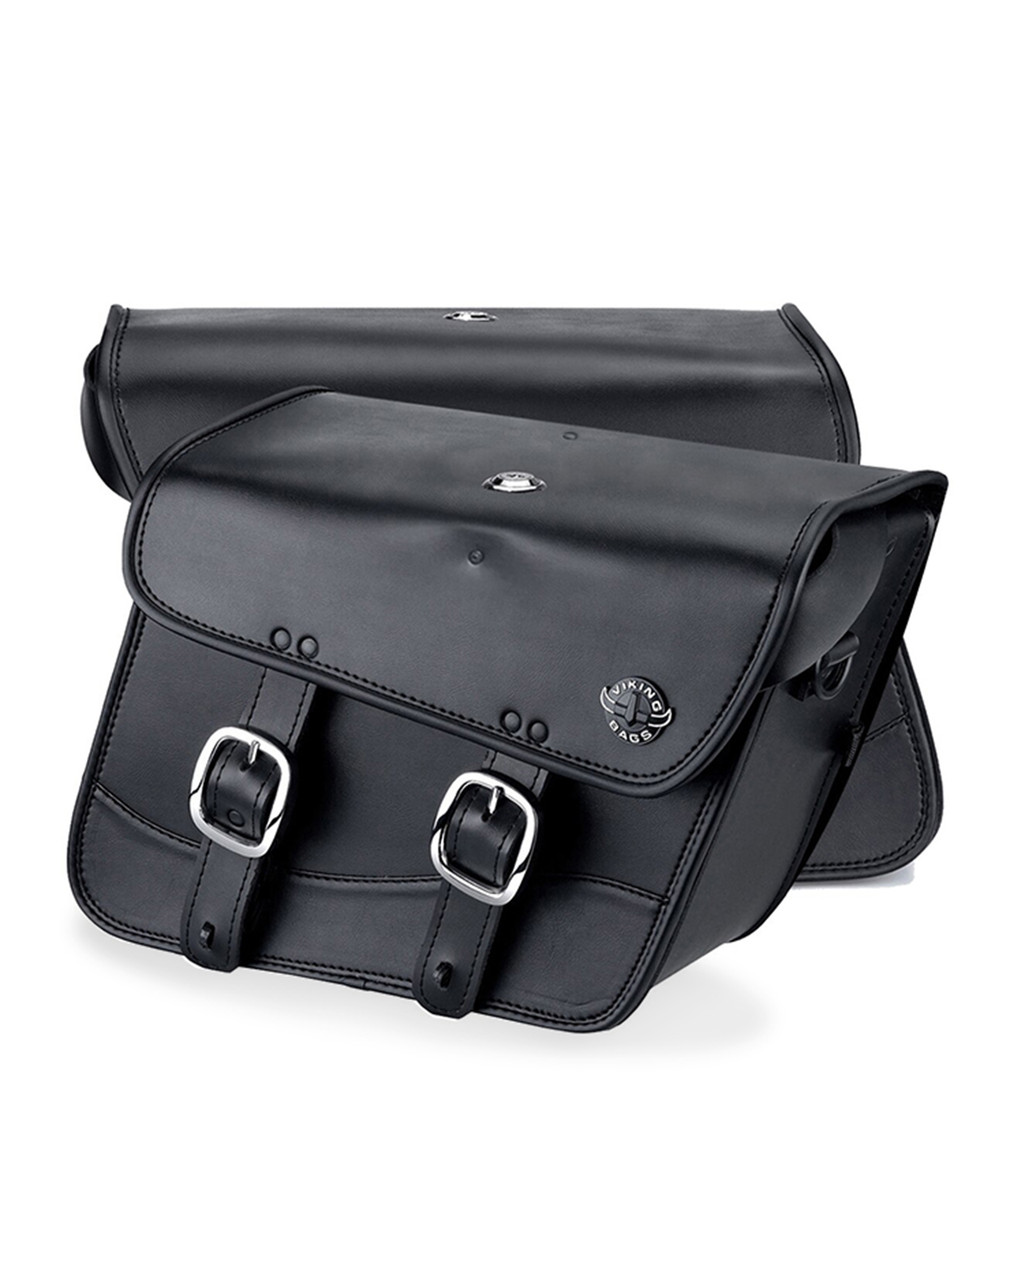 Honda 1500 Valkyrie Interstate Viking Thor Series Small Leather Motorcycle Saddlebags Both Bags View